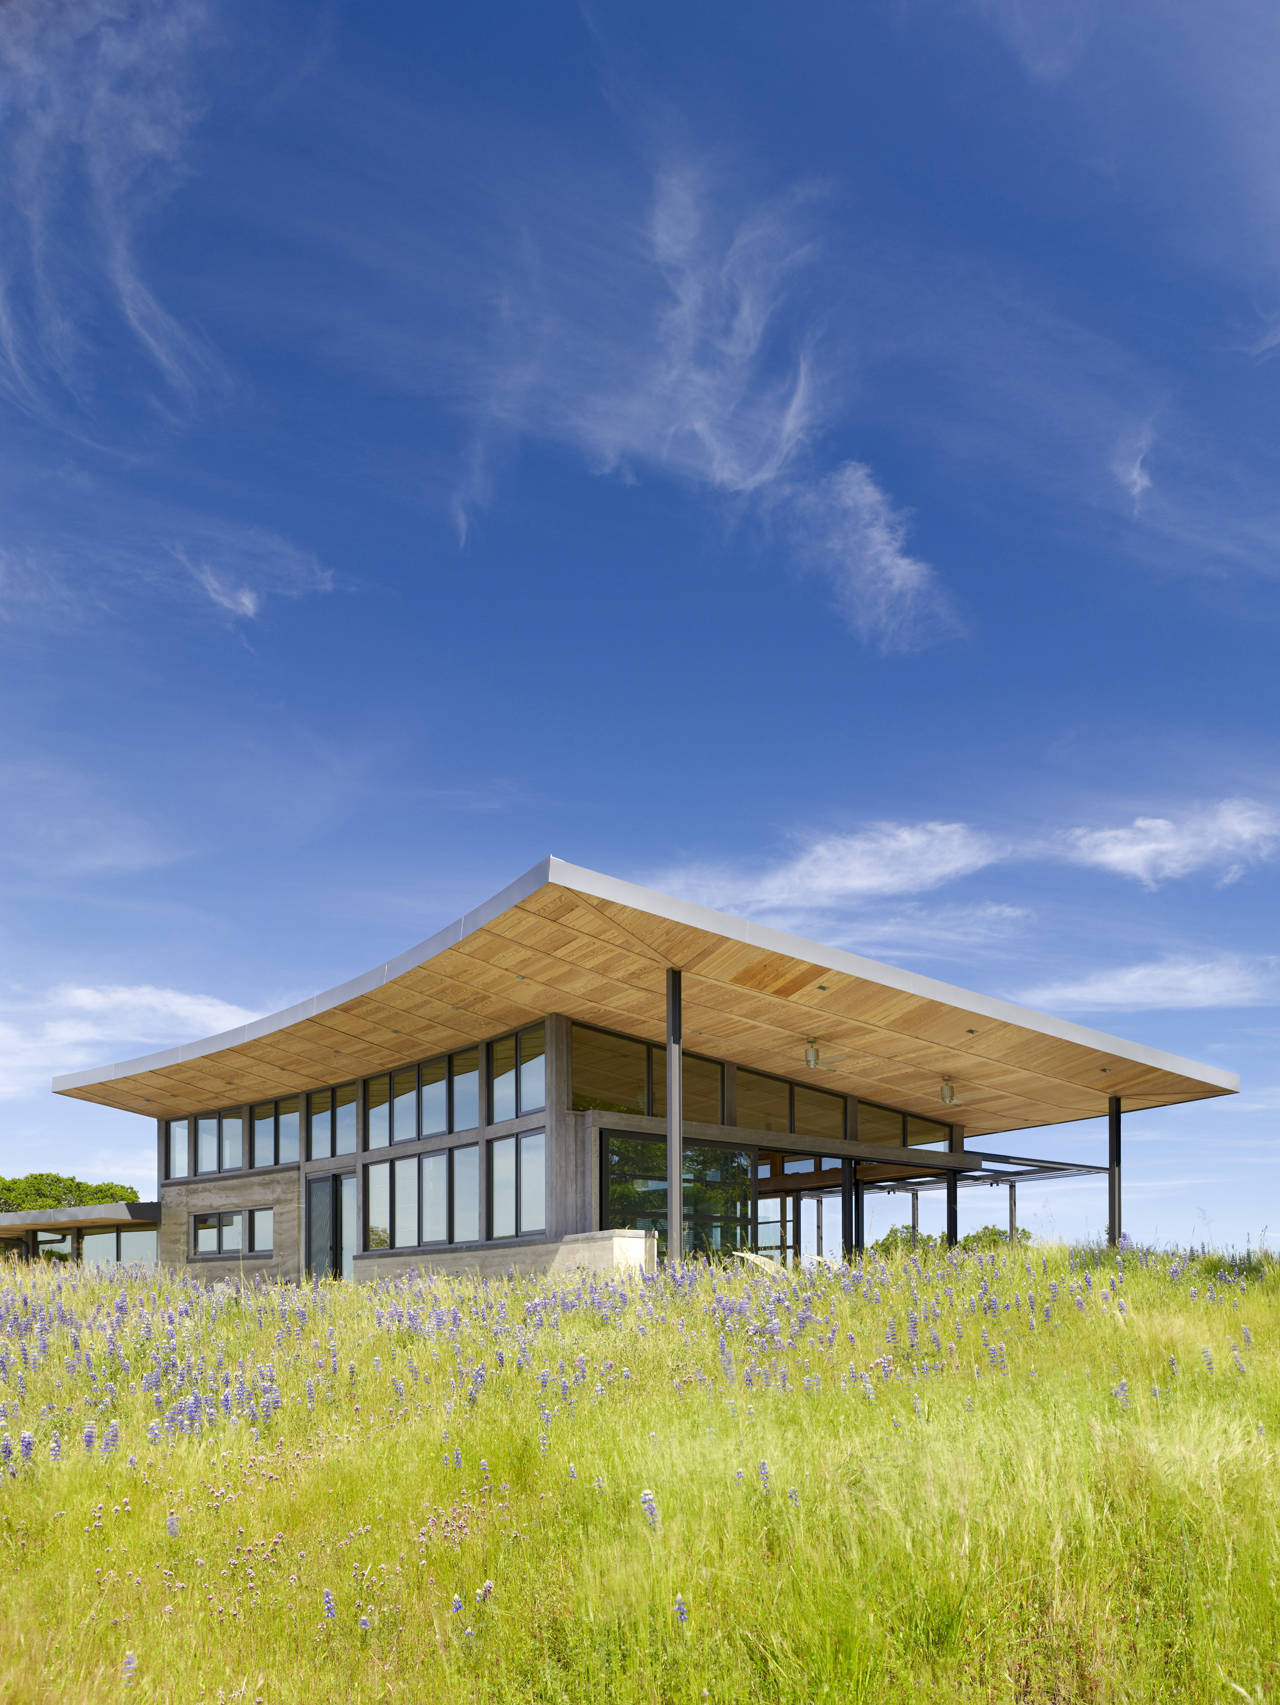 Rolling Hills, Caterpillar House in Carmel, California by Feldman Architecture